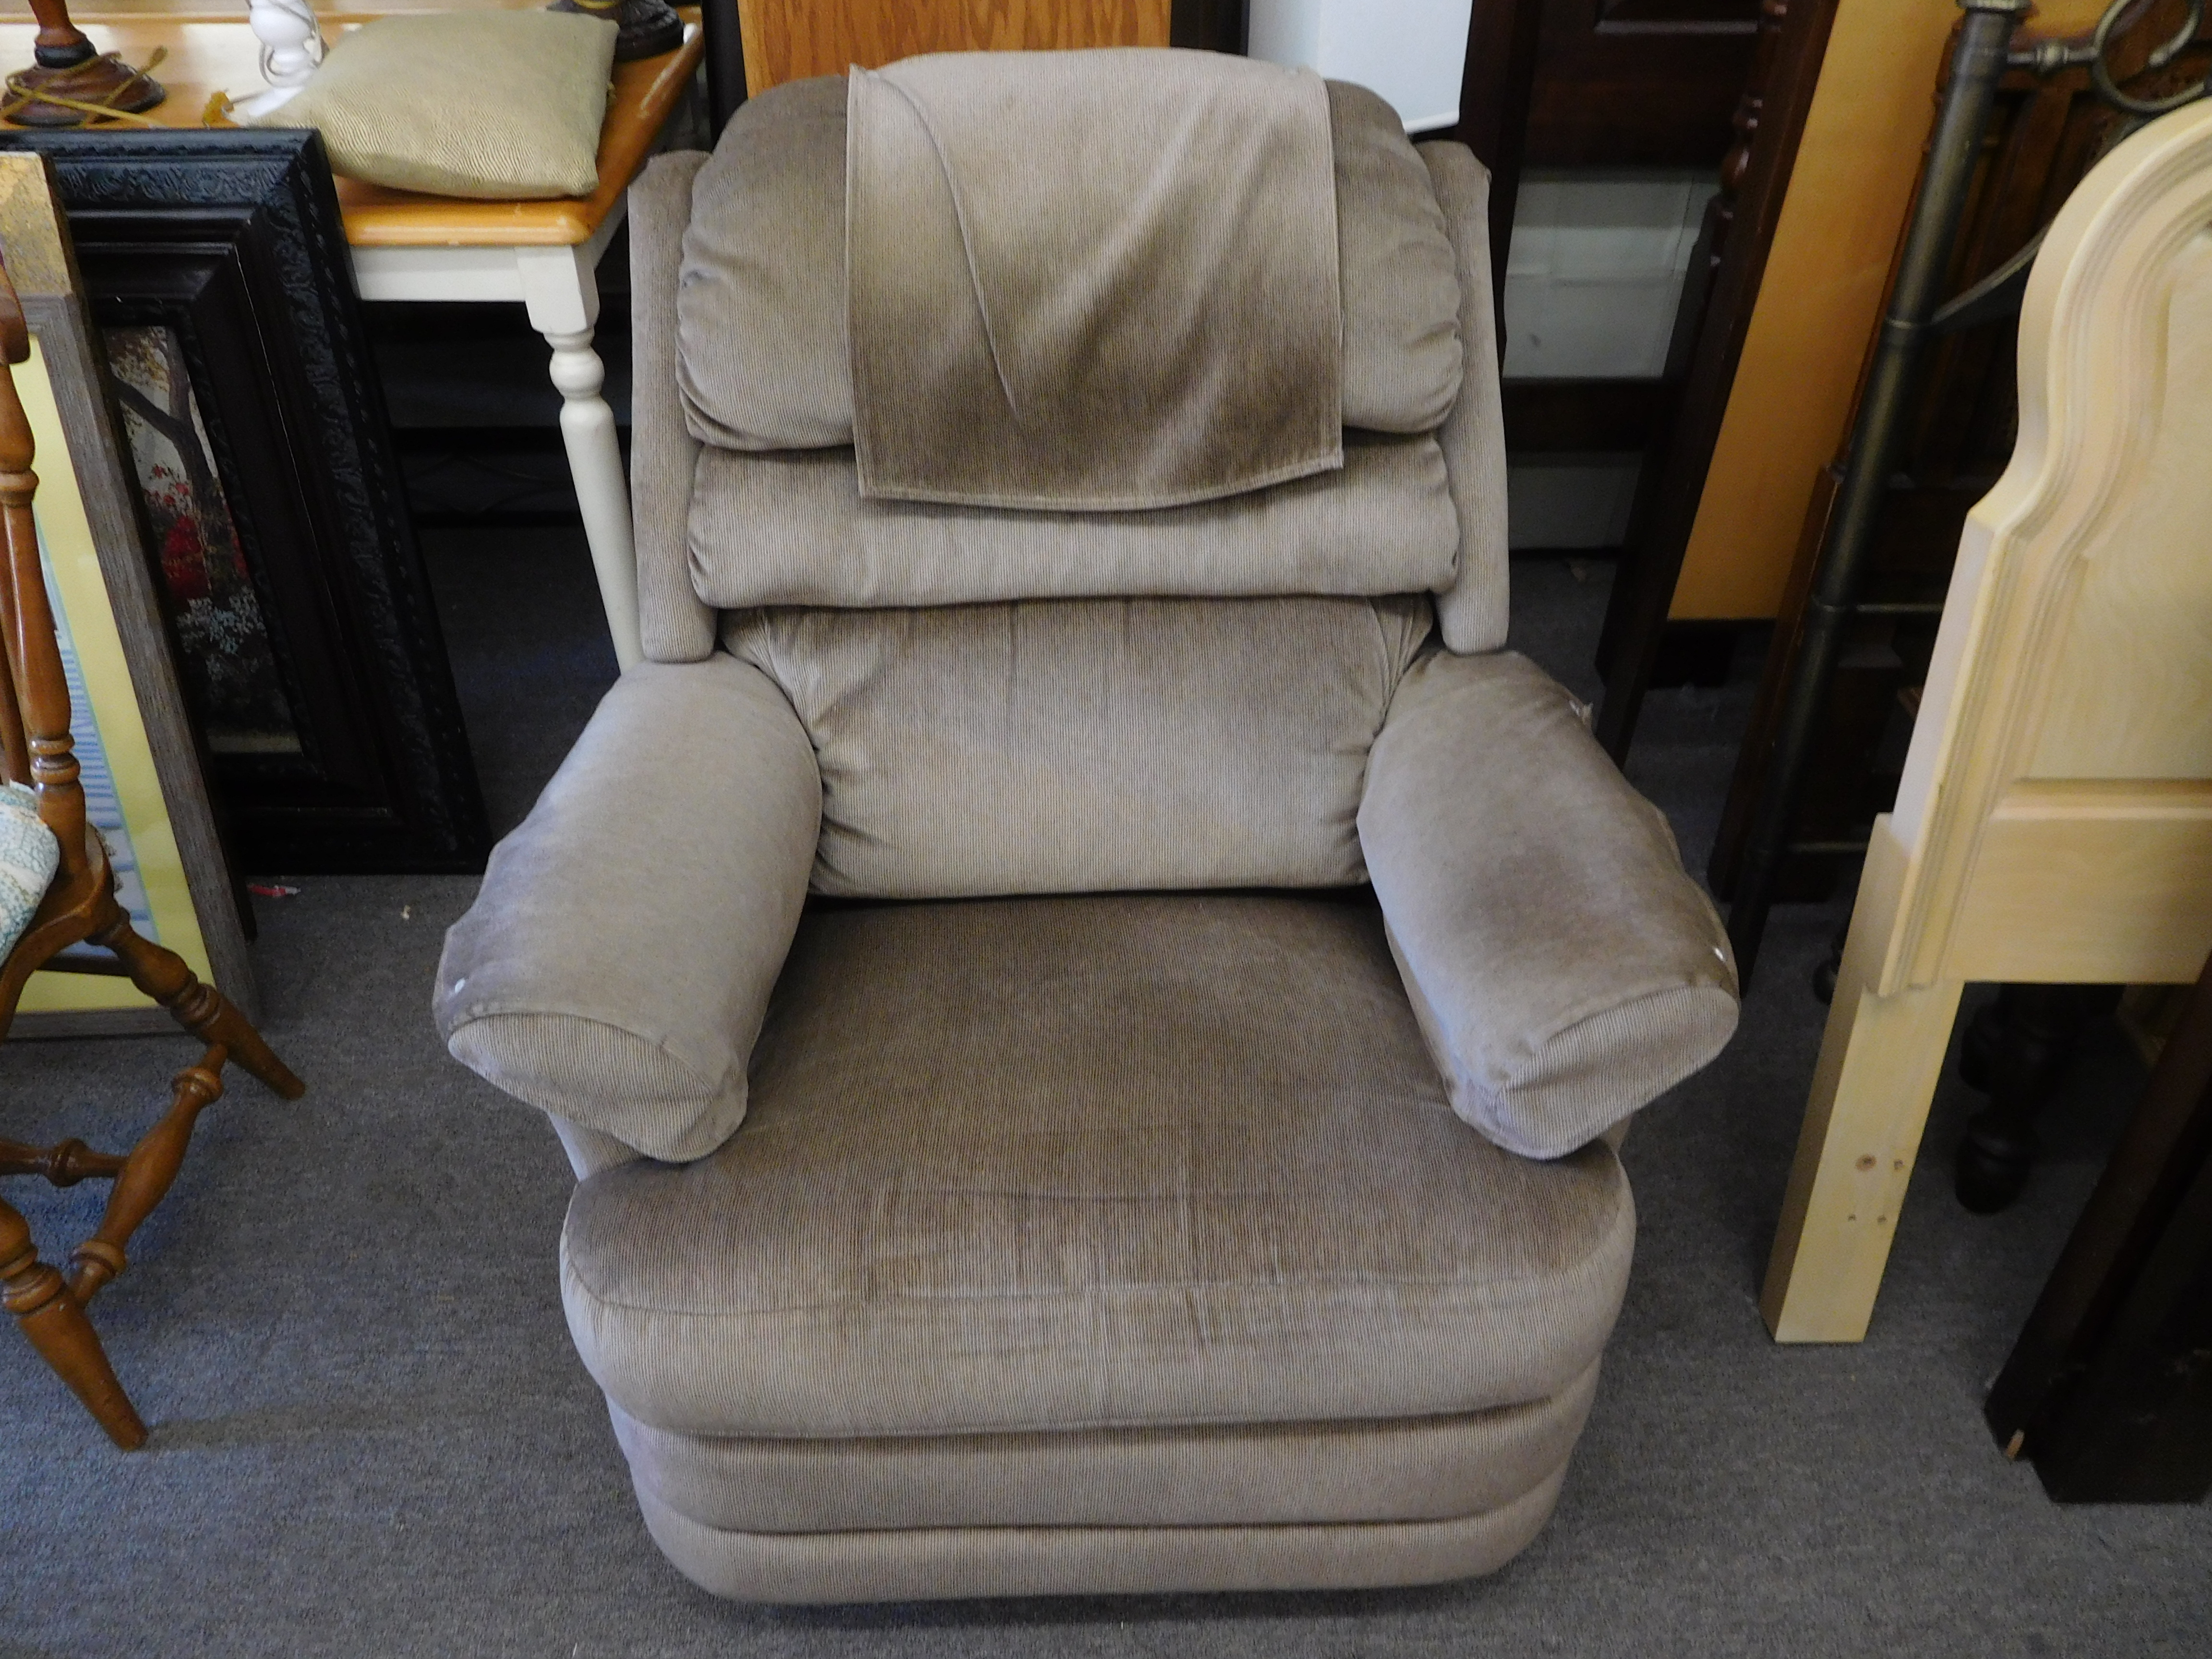 La-Z-Boy Recliner with Brown Upholstery